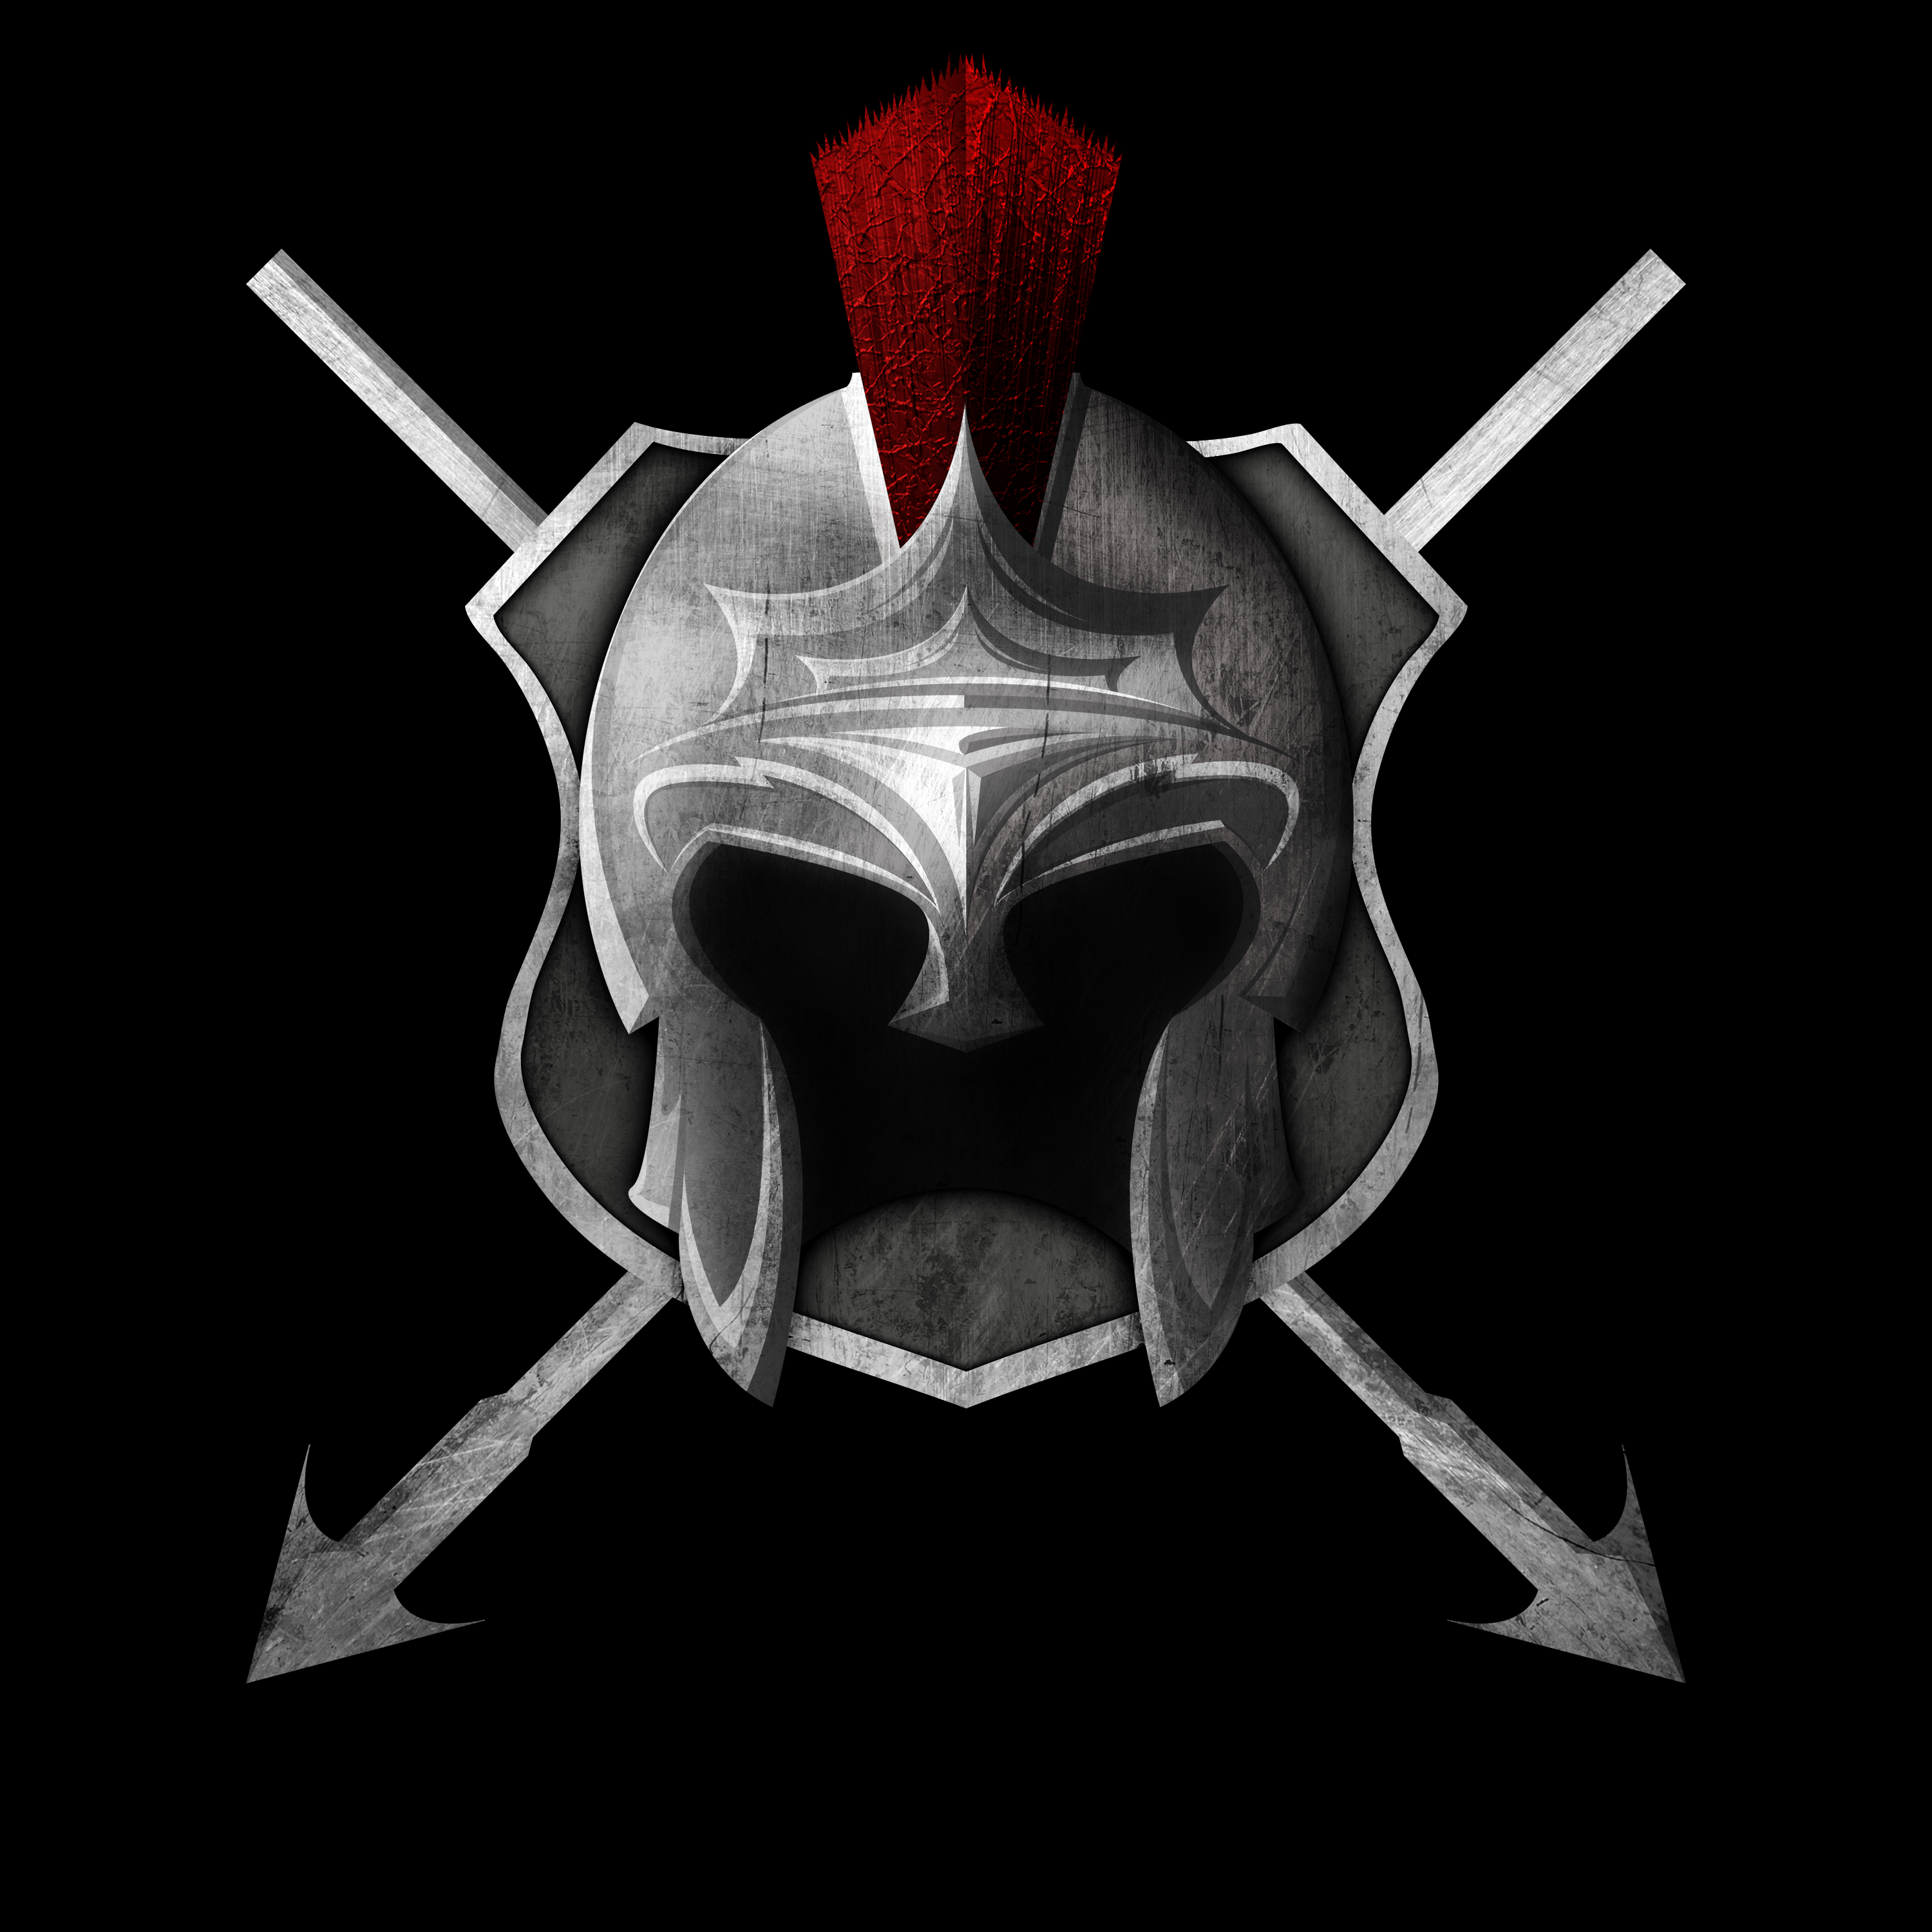 Spartan Helmet Wallpaper - WallpaperSafari